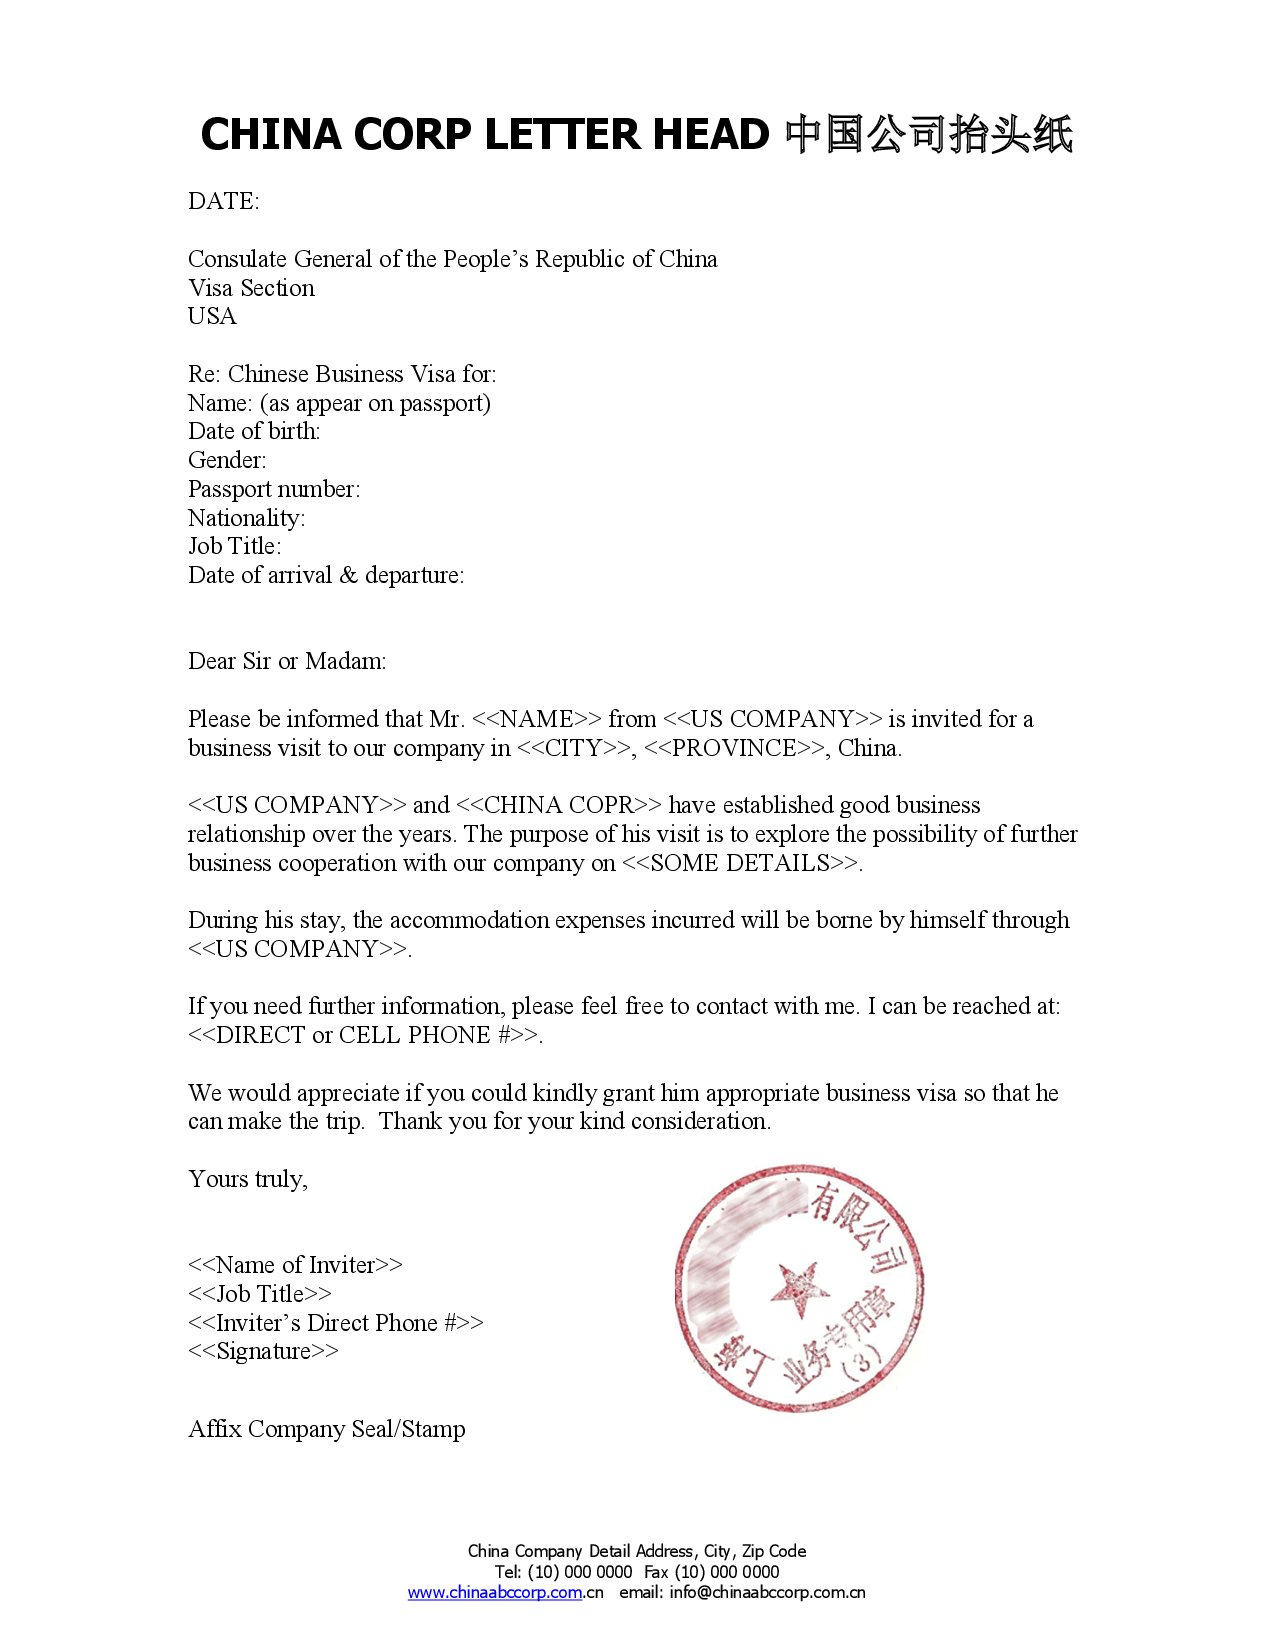 Format invitation letter for business visa to china lettervisa format invitation letter for business visa to china lettervisa invitation letter application letter sample thecheapjerseys Gallery